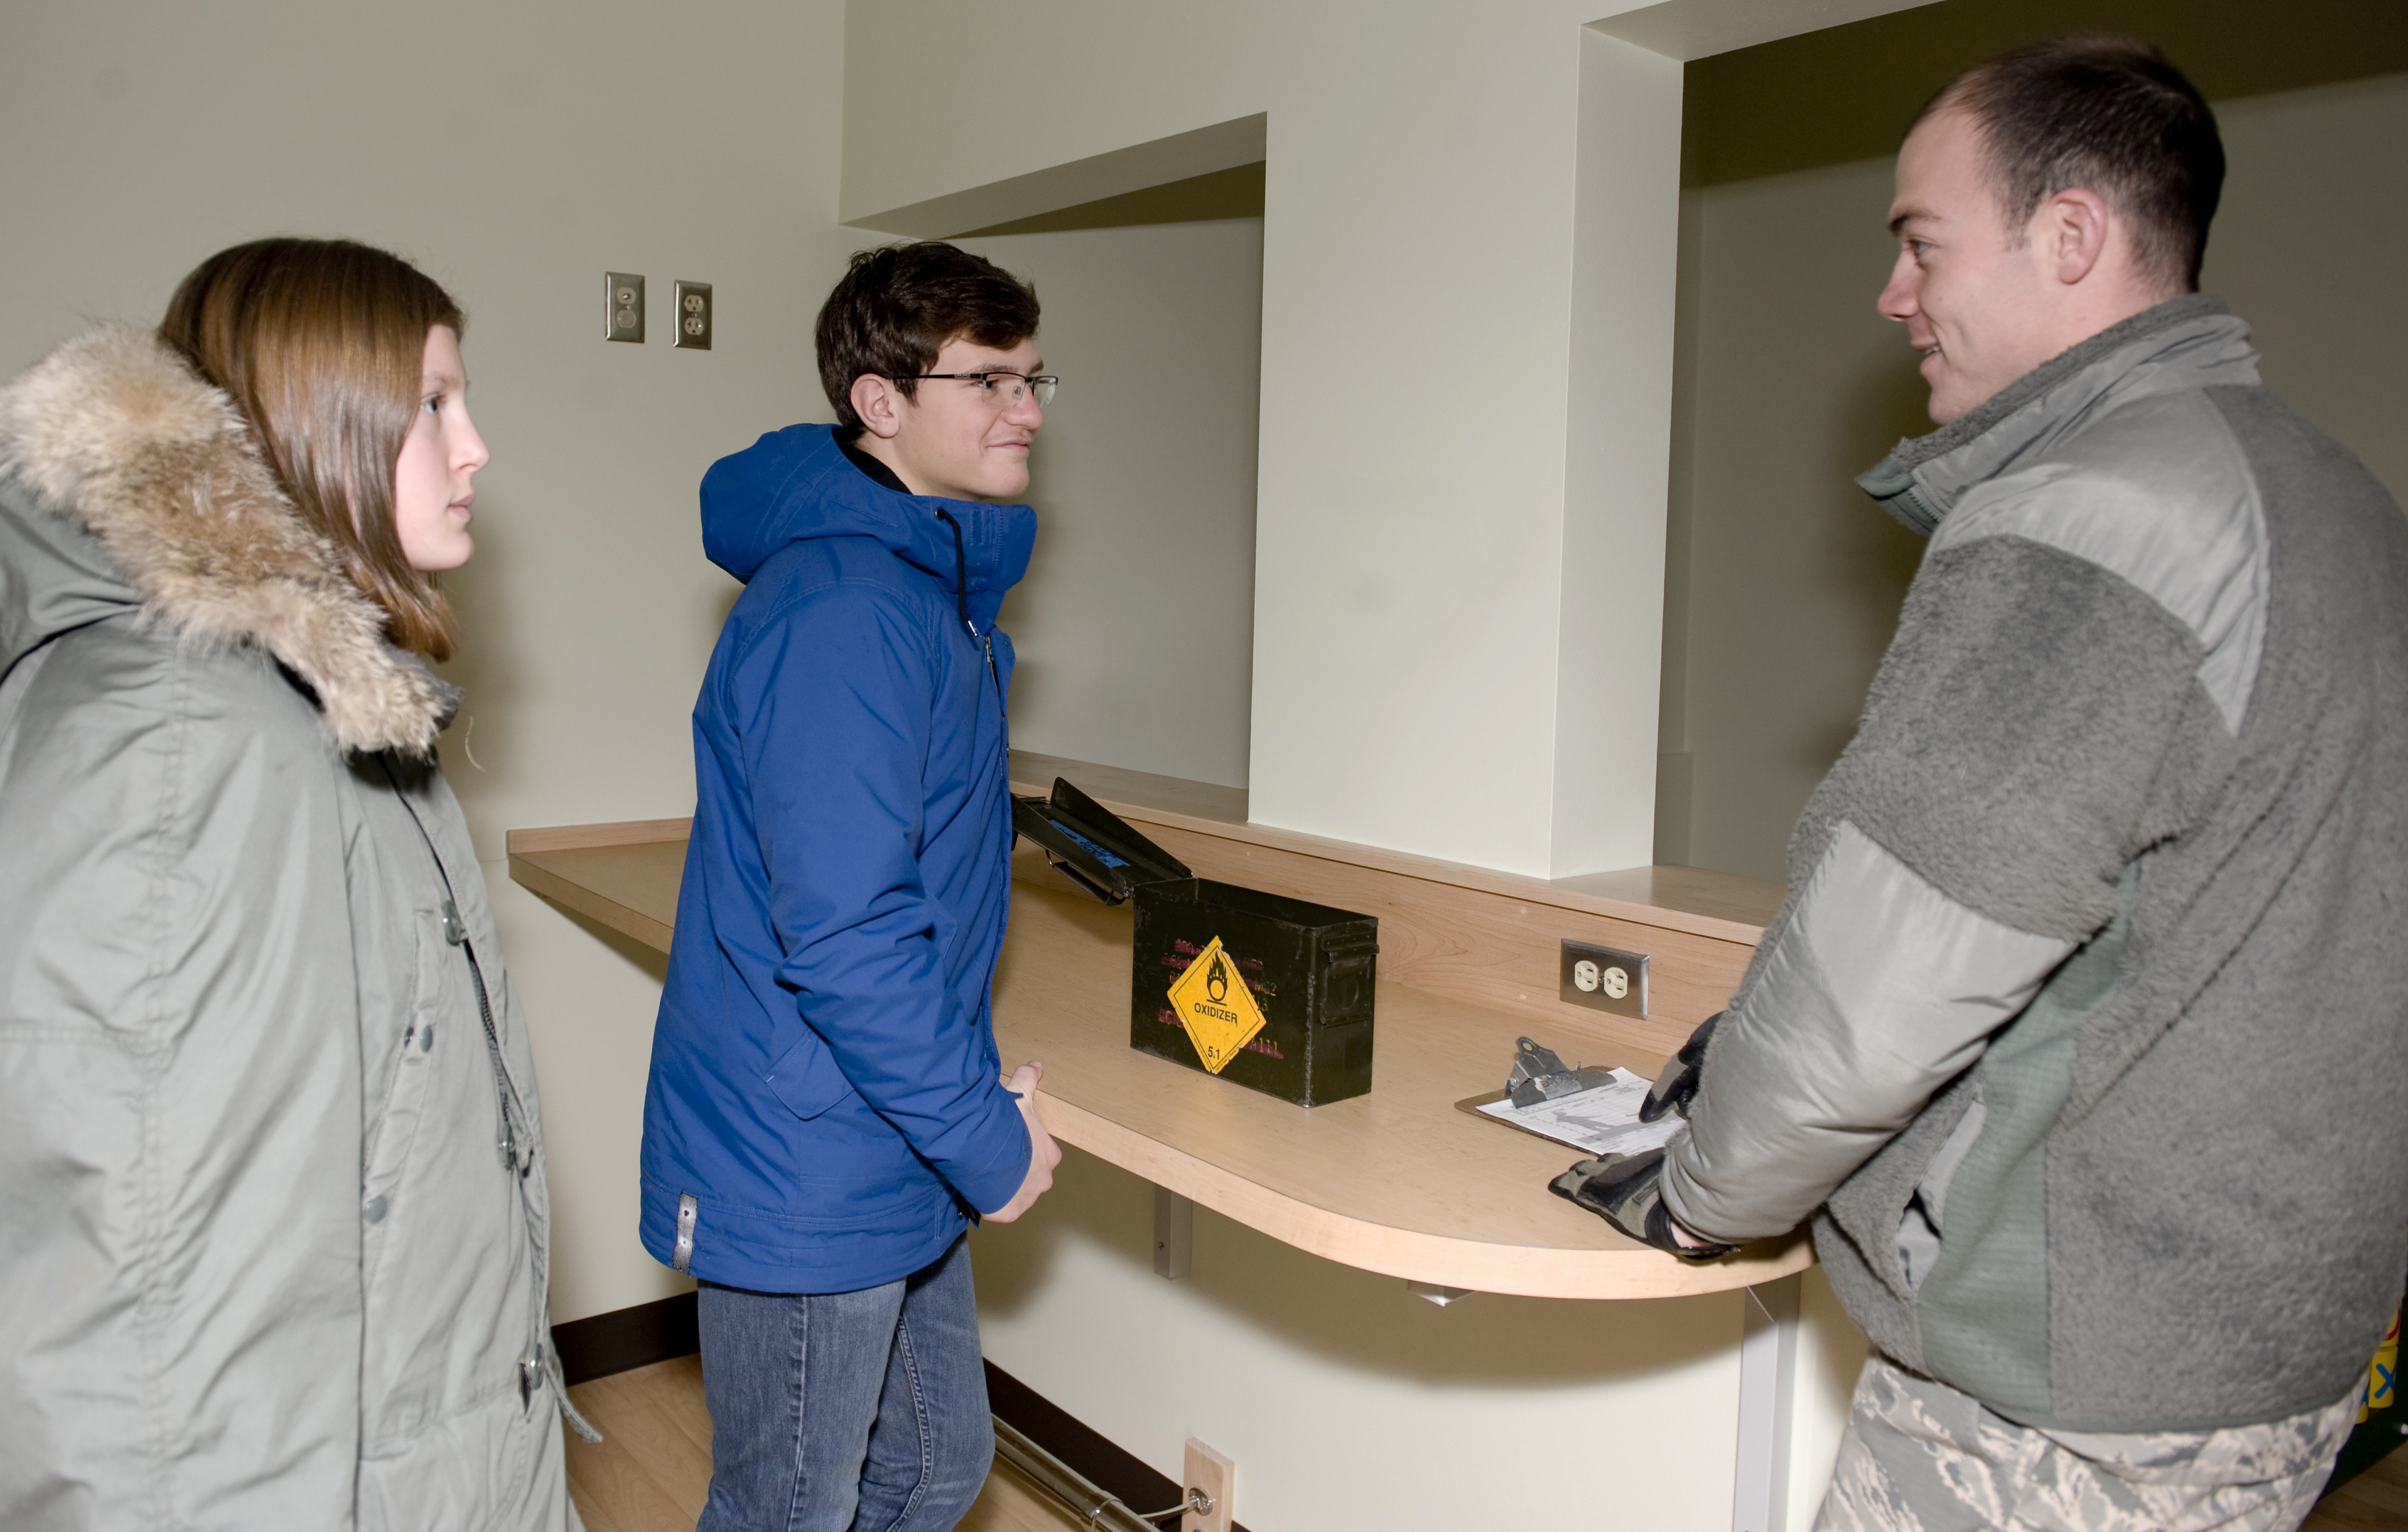 job shadow program gives students real life experience > eielson job shadow program gives students real life experience